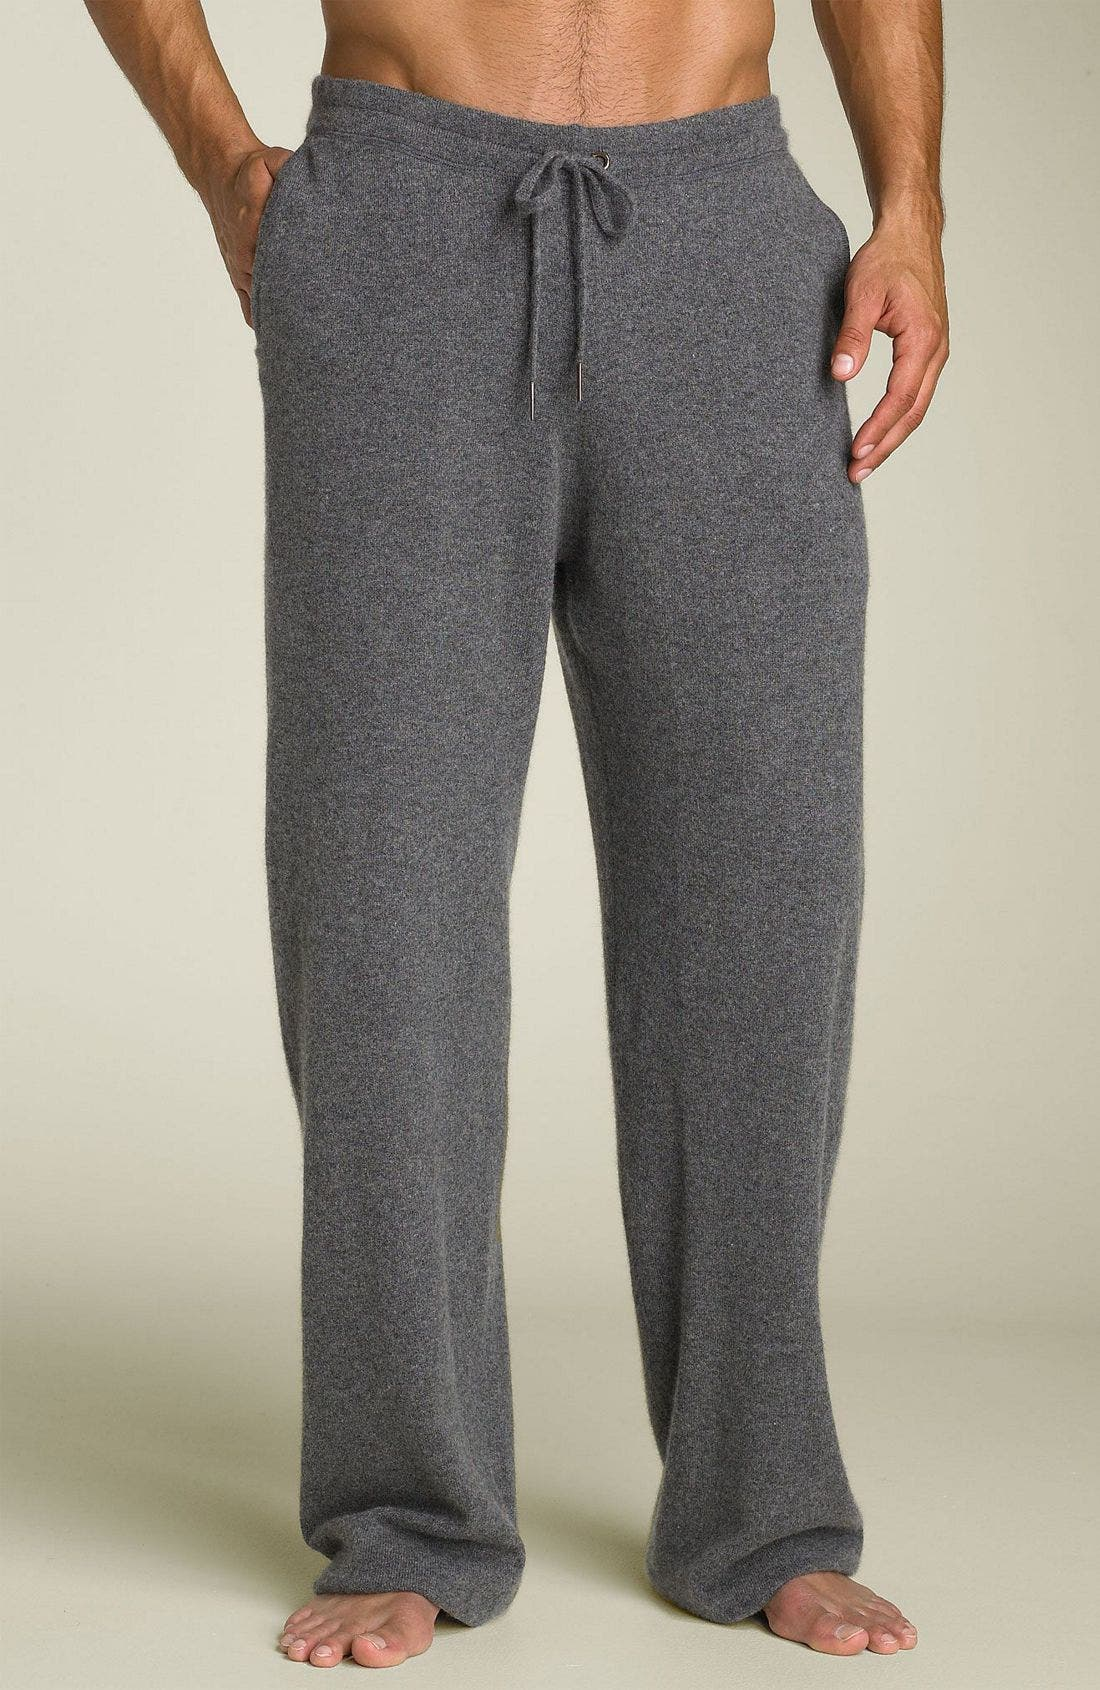 Alternate Image 1 Selected - American Essentials Cashmere Drawstring Pants